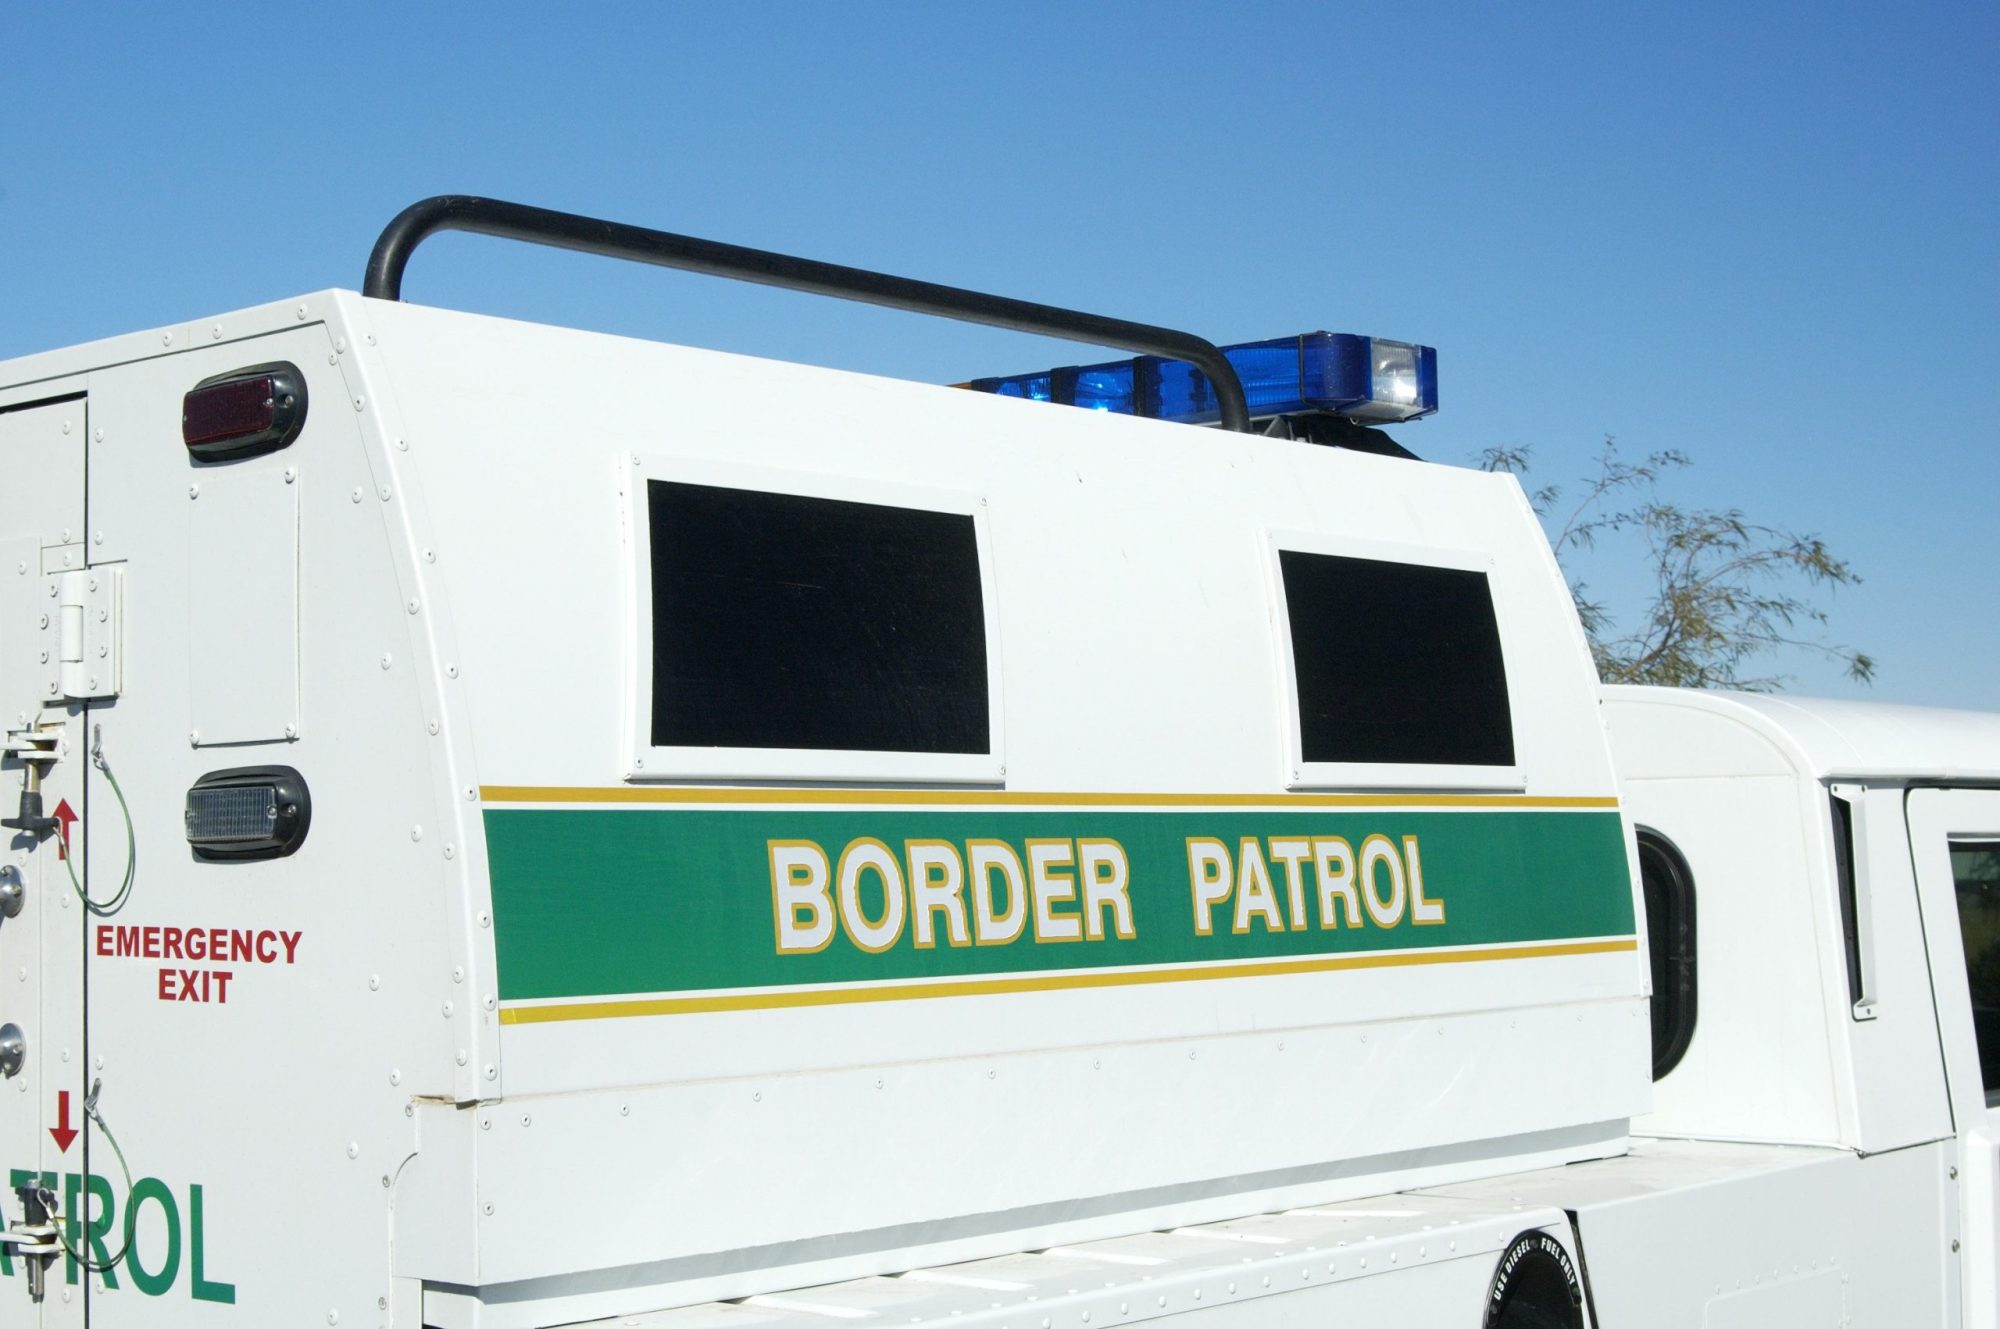 A U.S. border patrol vehicle is seen in this file photo. (Credit: Getty Images)